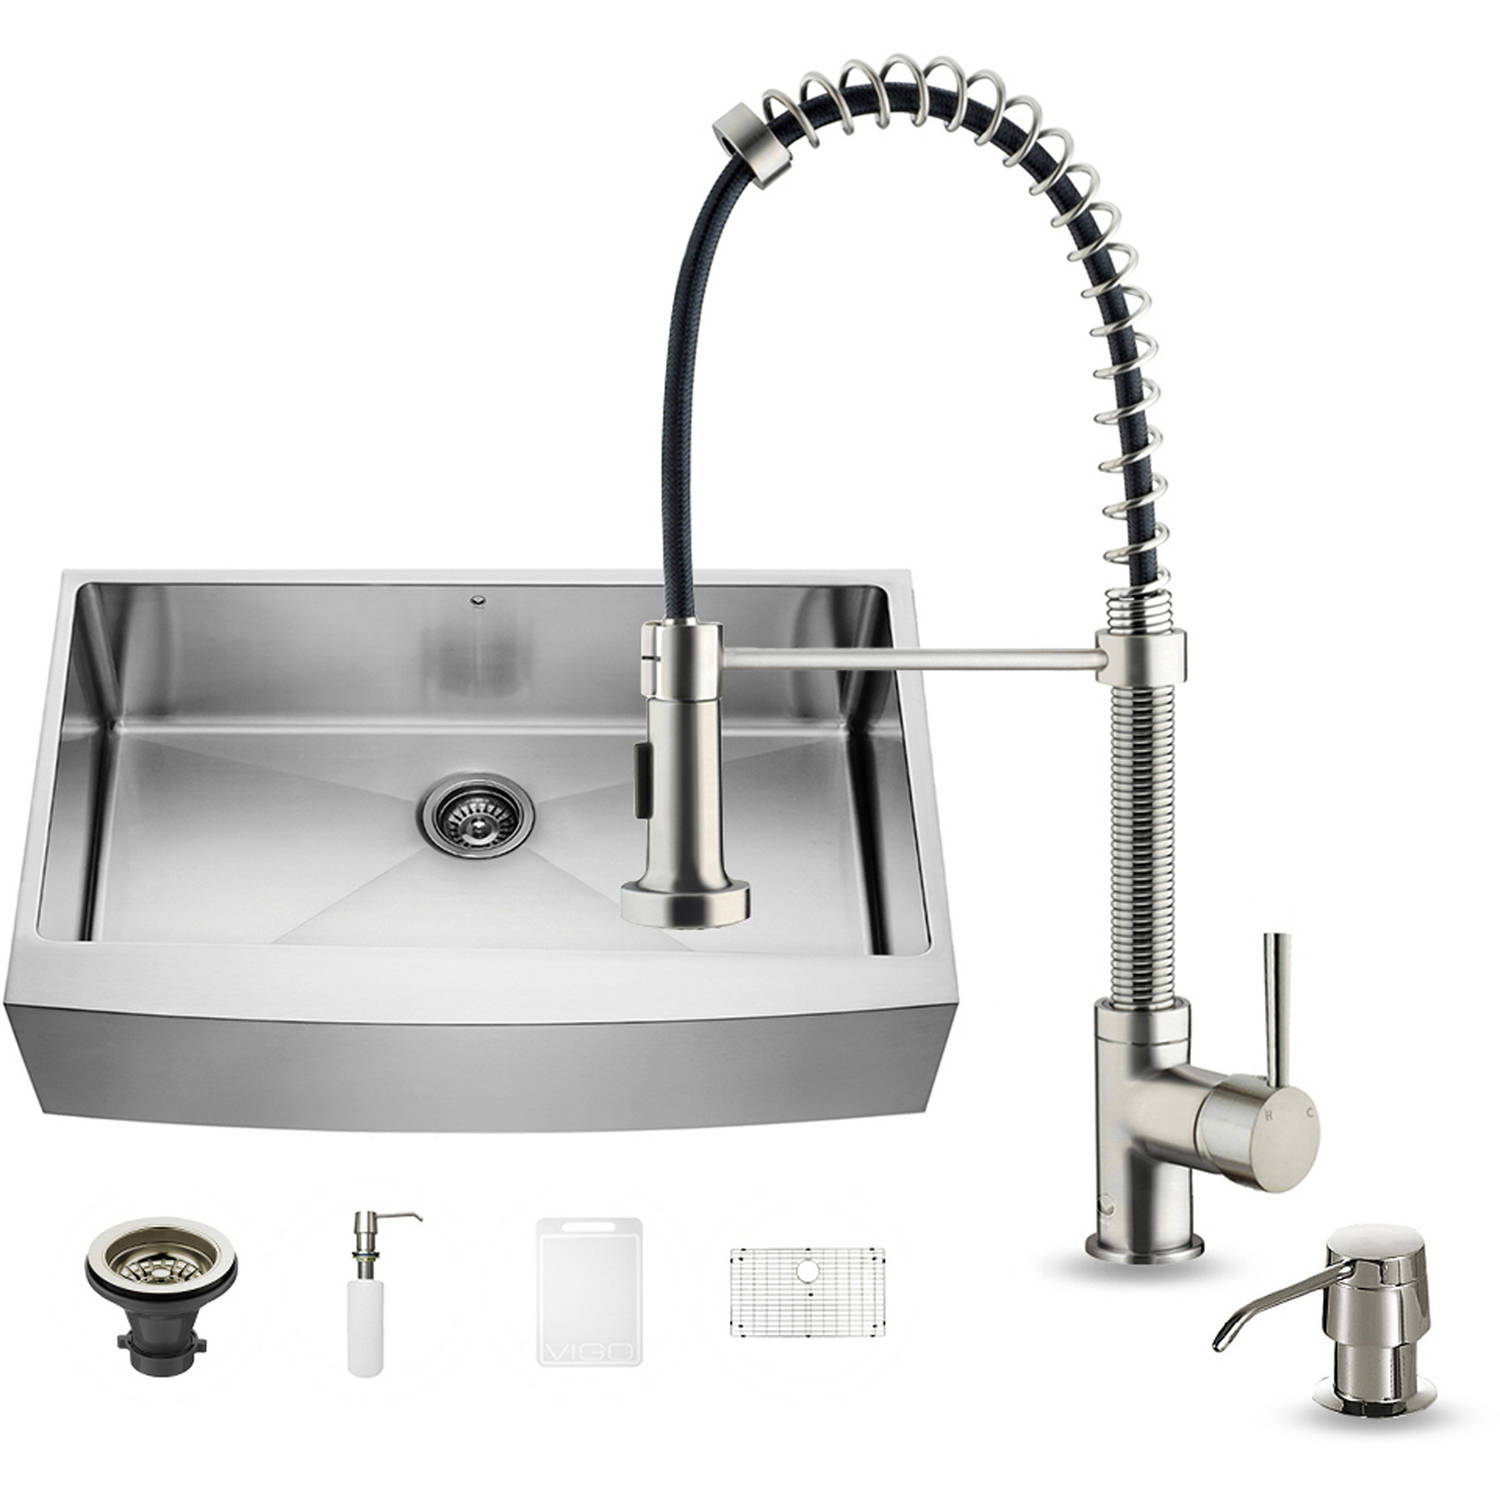 """Vigo All-in-One 36"""" Farmhouse Stainless Steel Kitchen Sink and Faucet Set by Generic"""